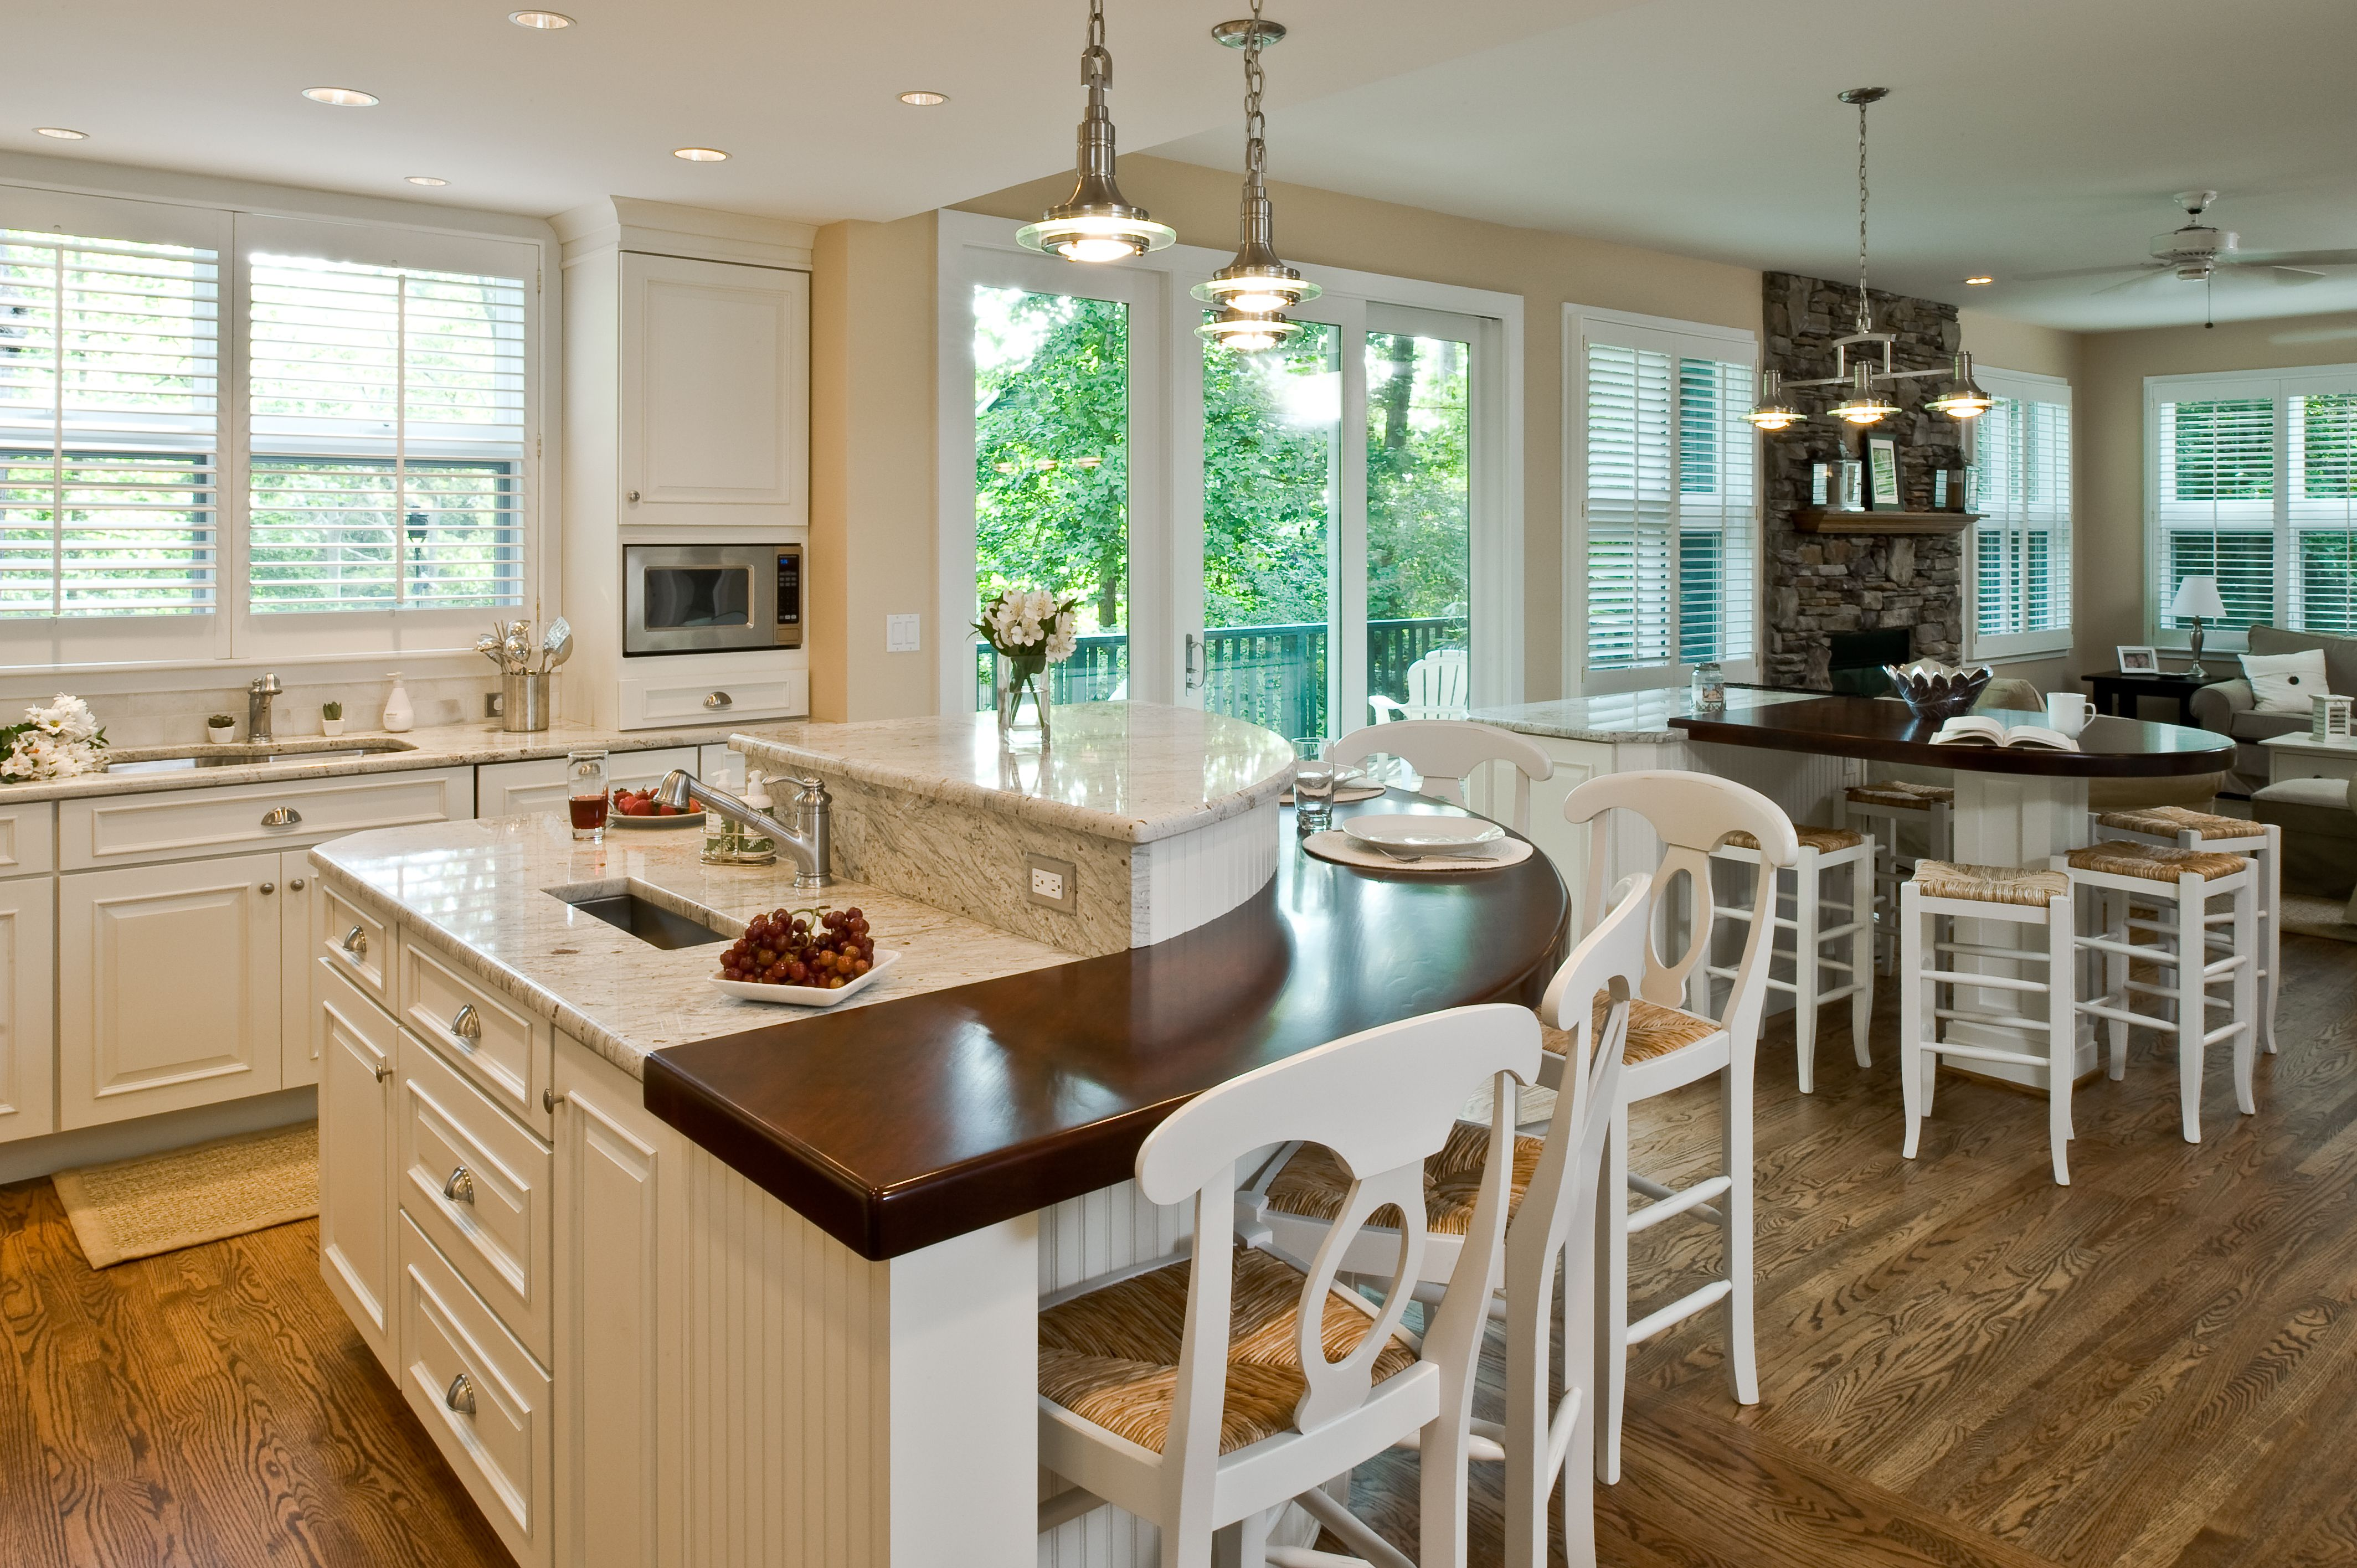 Traditional kitchen double island; Rounded wood top